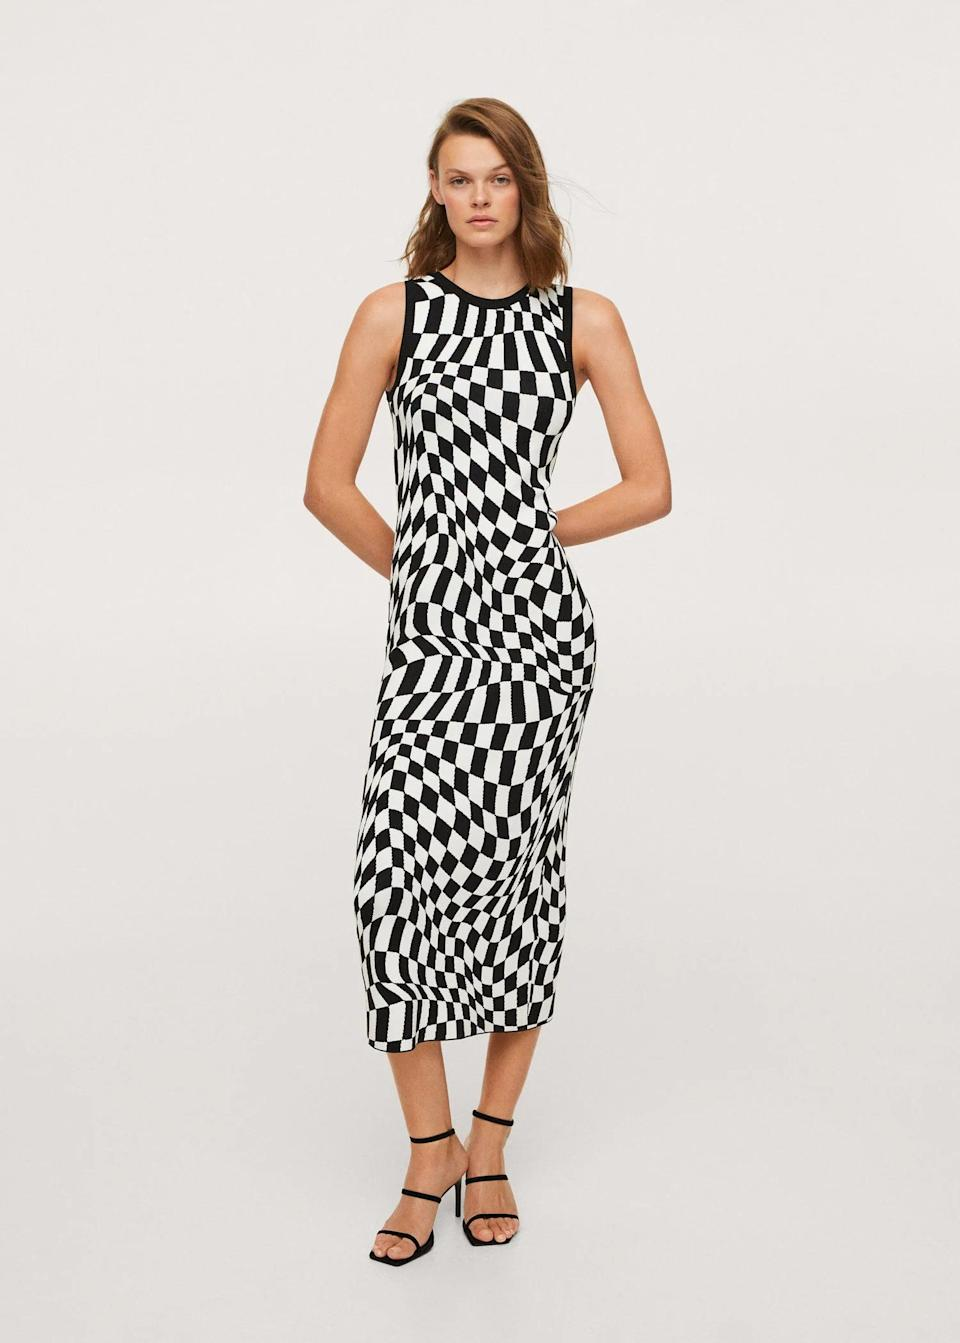 <p>This <span>Check Knit Dress</span> ($80) will infuse your fall wardrobe with a modern edge and playfulness. Finish your look with a leather jacket and some barely there heels.</p>